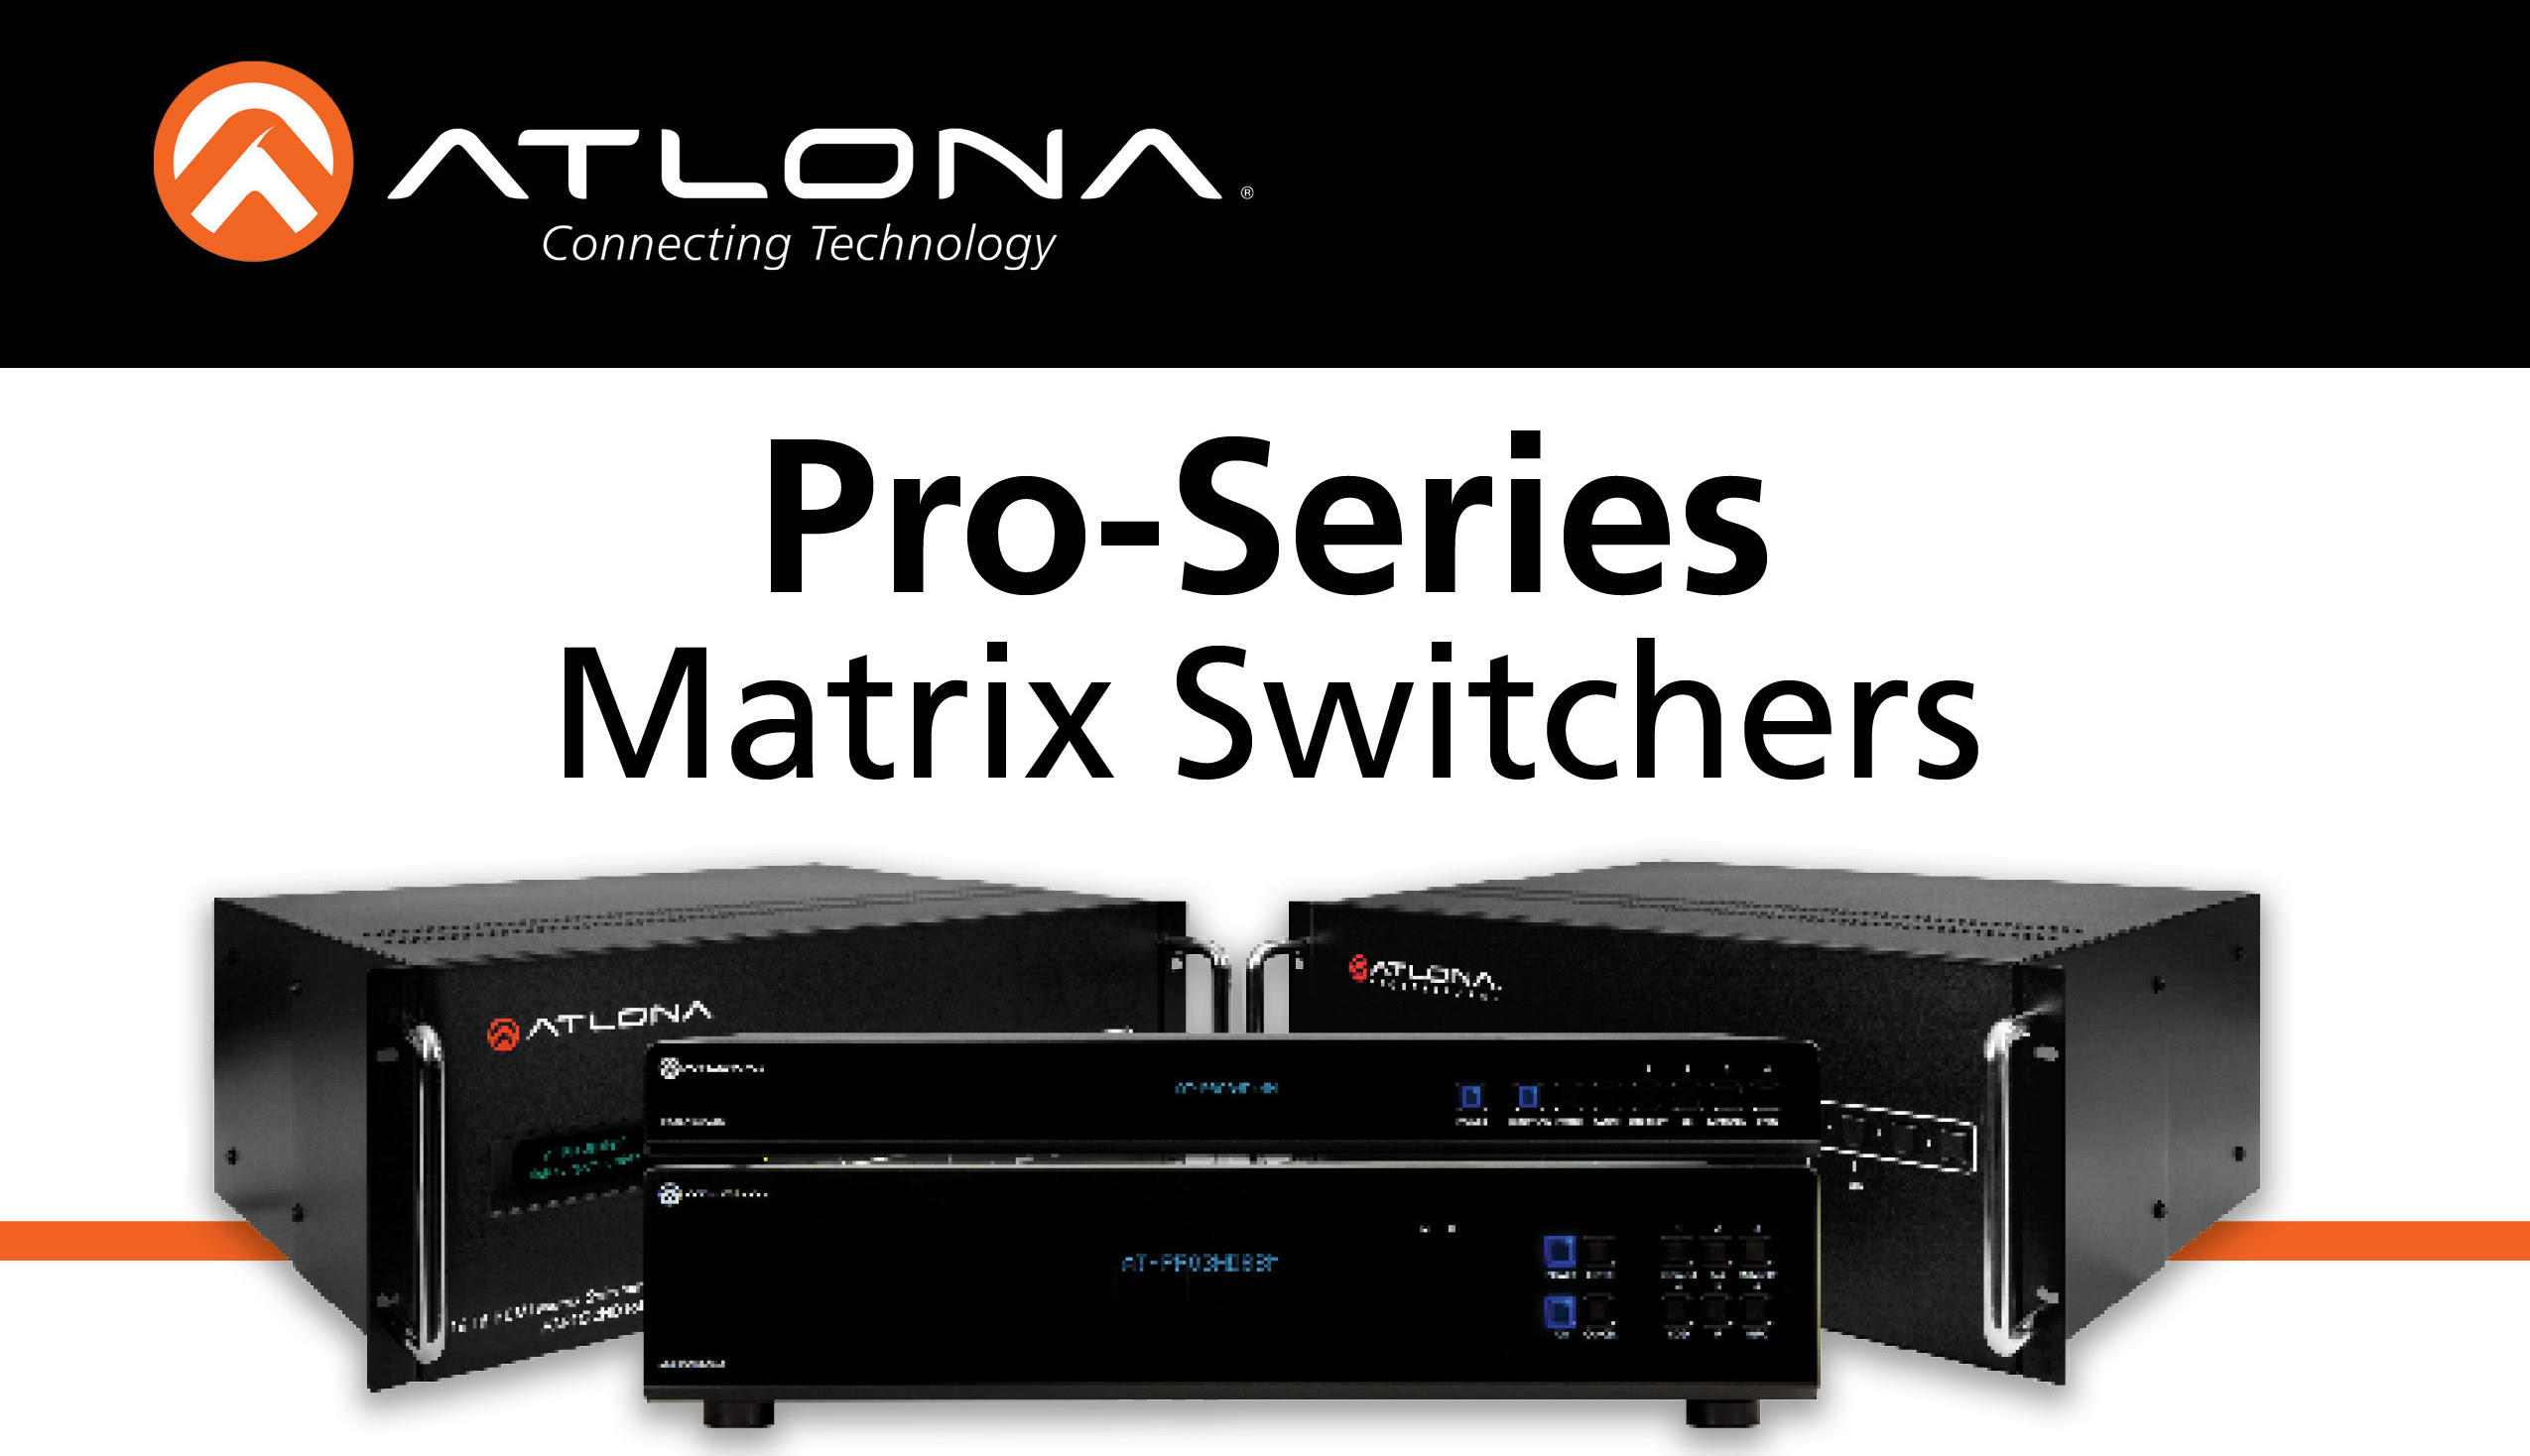 Atlona's Pro-Series Line of Fast, Dependable Matrix Switchers!